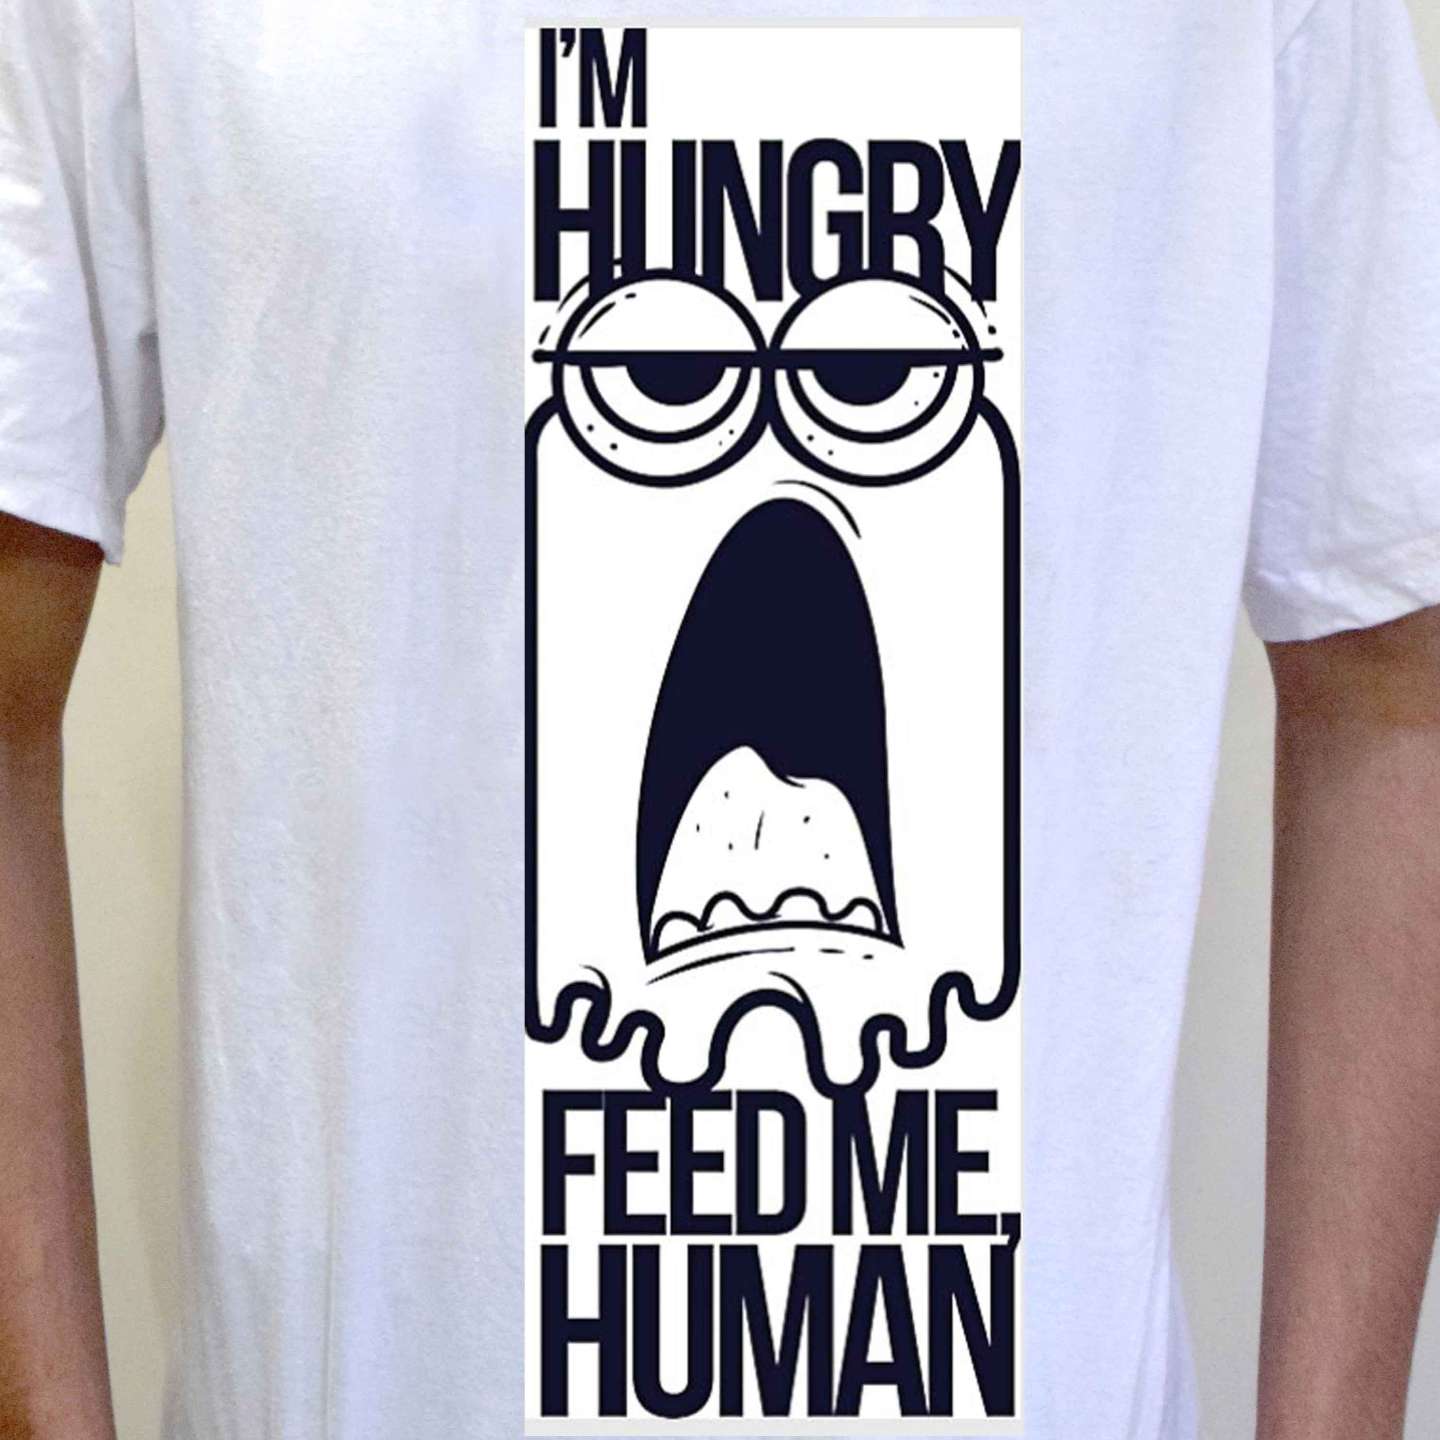 Feed me humans now!